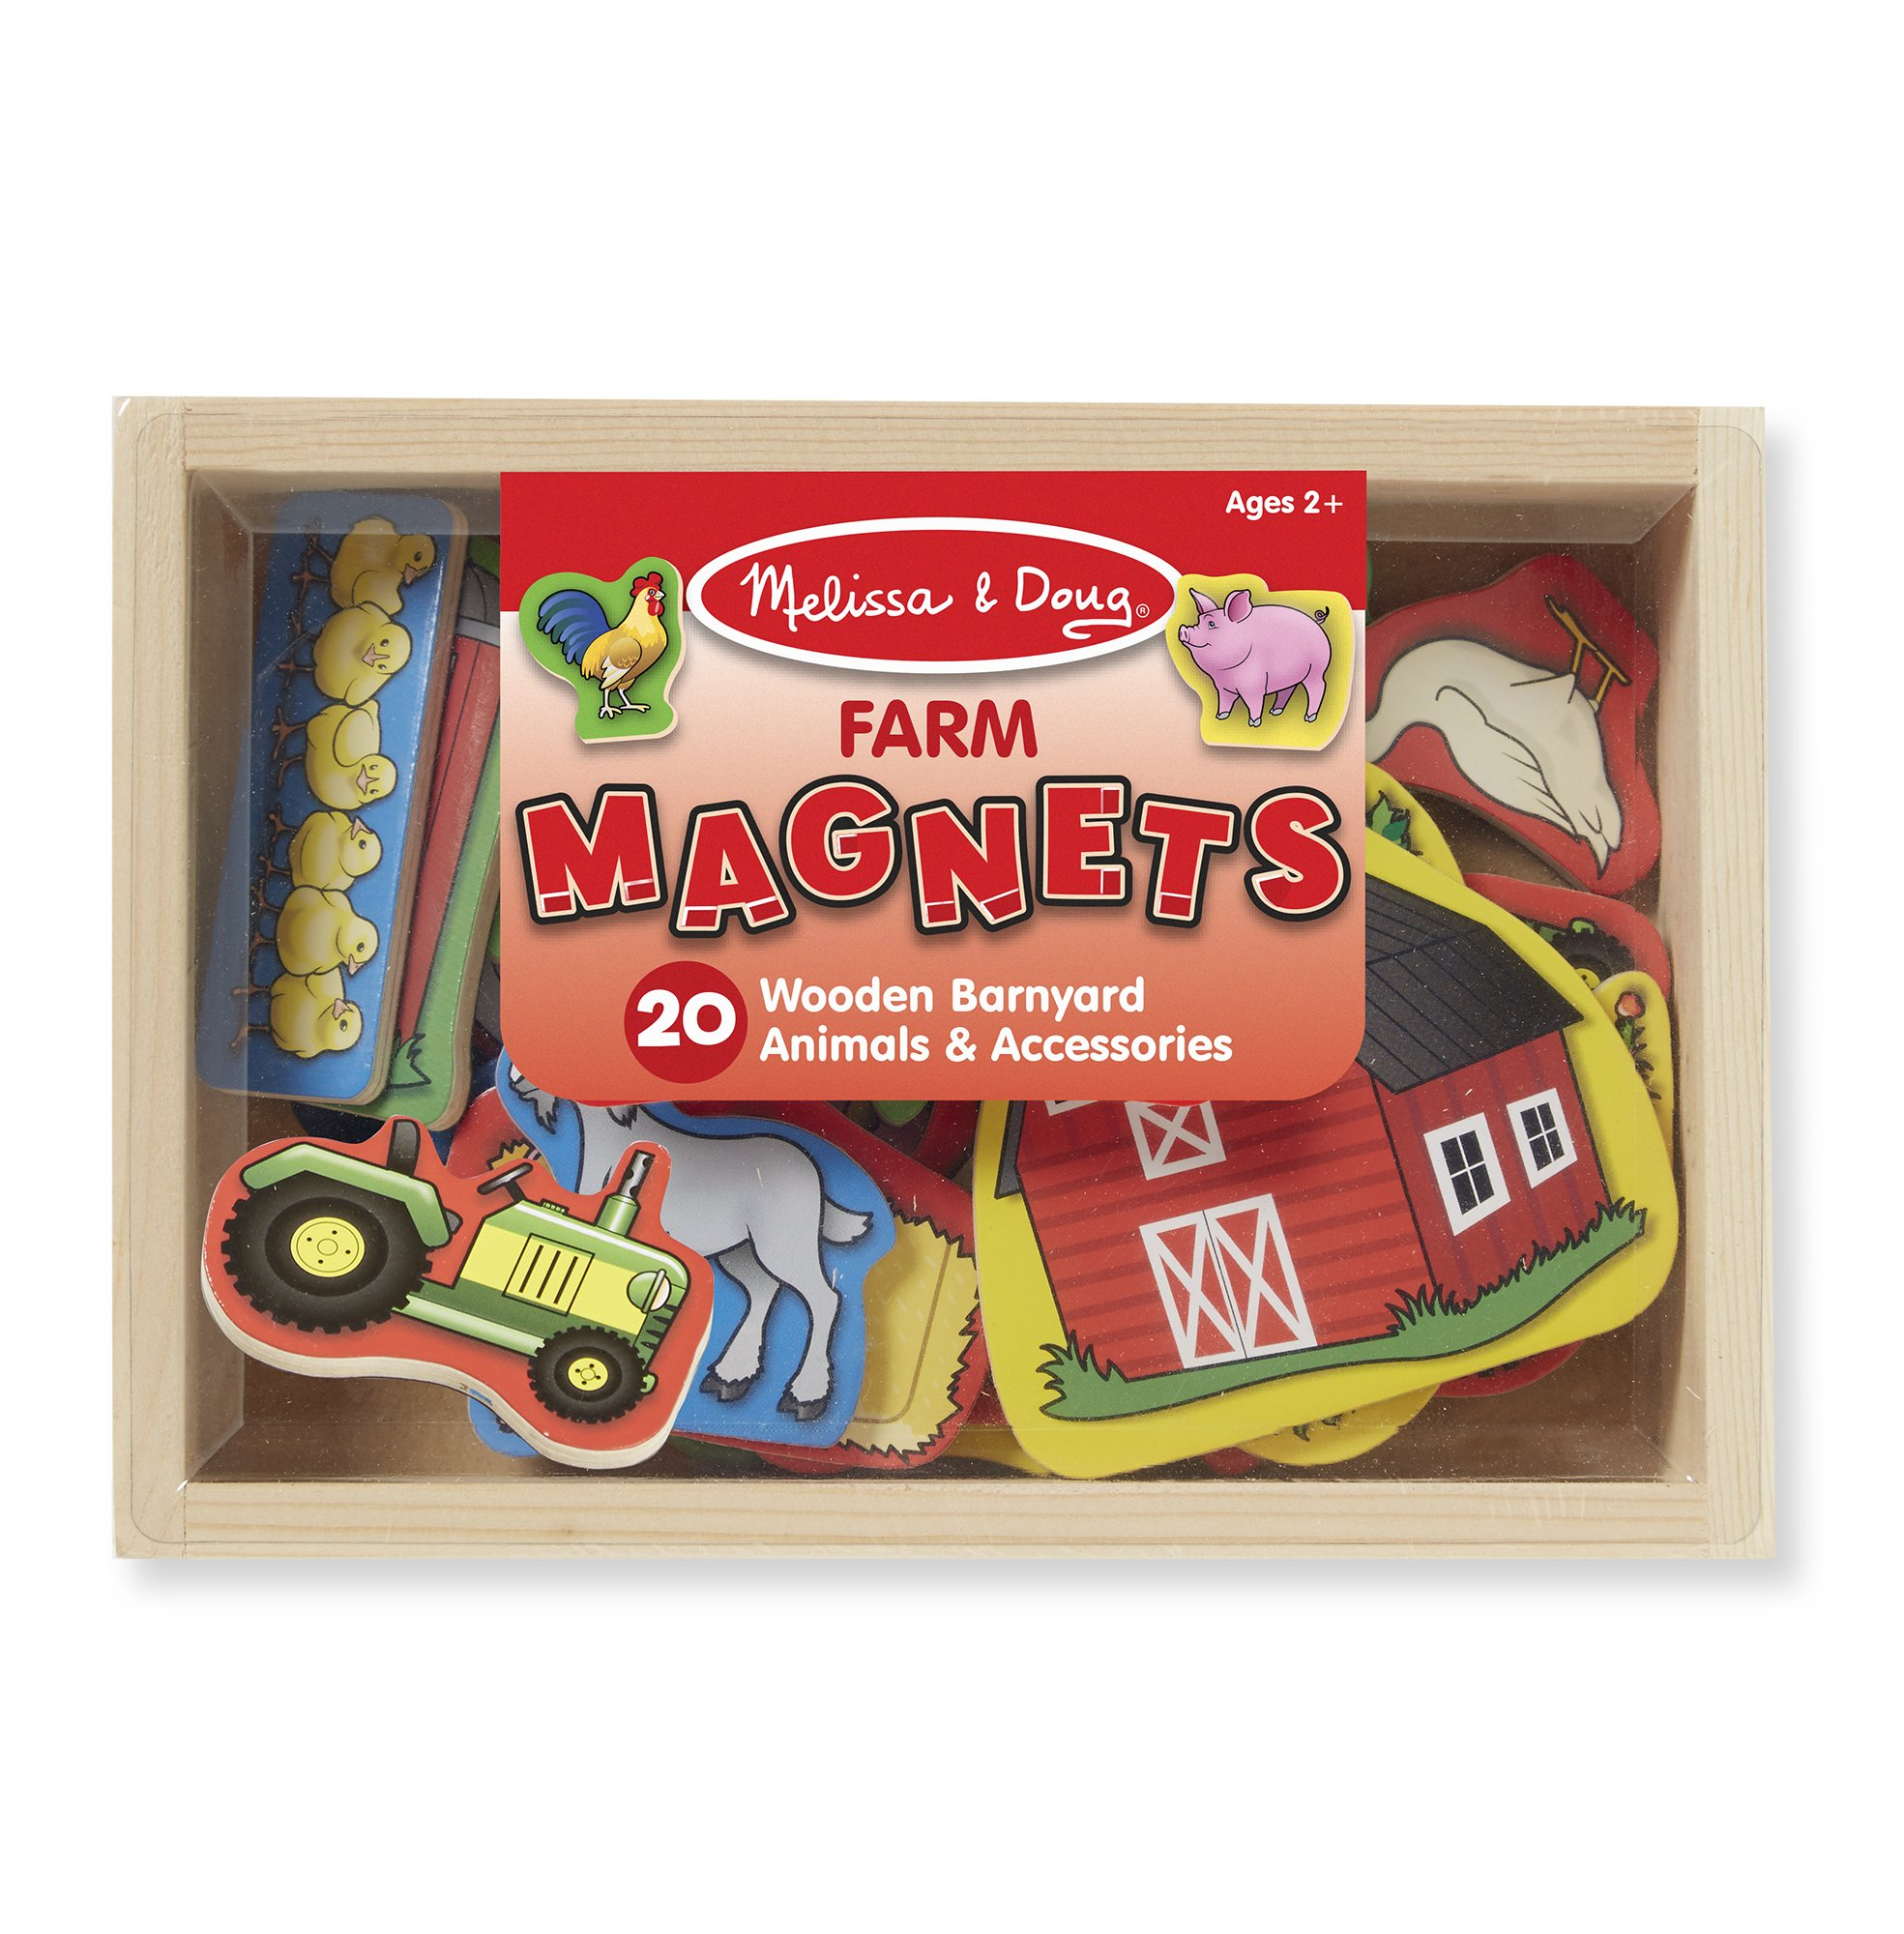 Melissa & Doug 20 Wooden Farm Magnets in a Box by Melissa & Doug